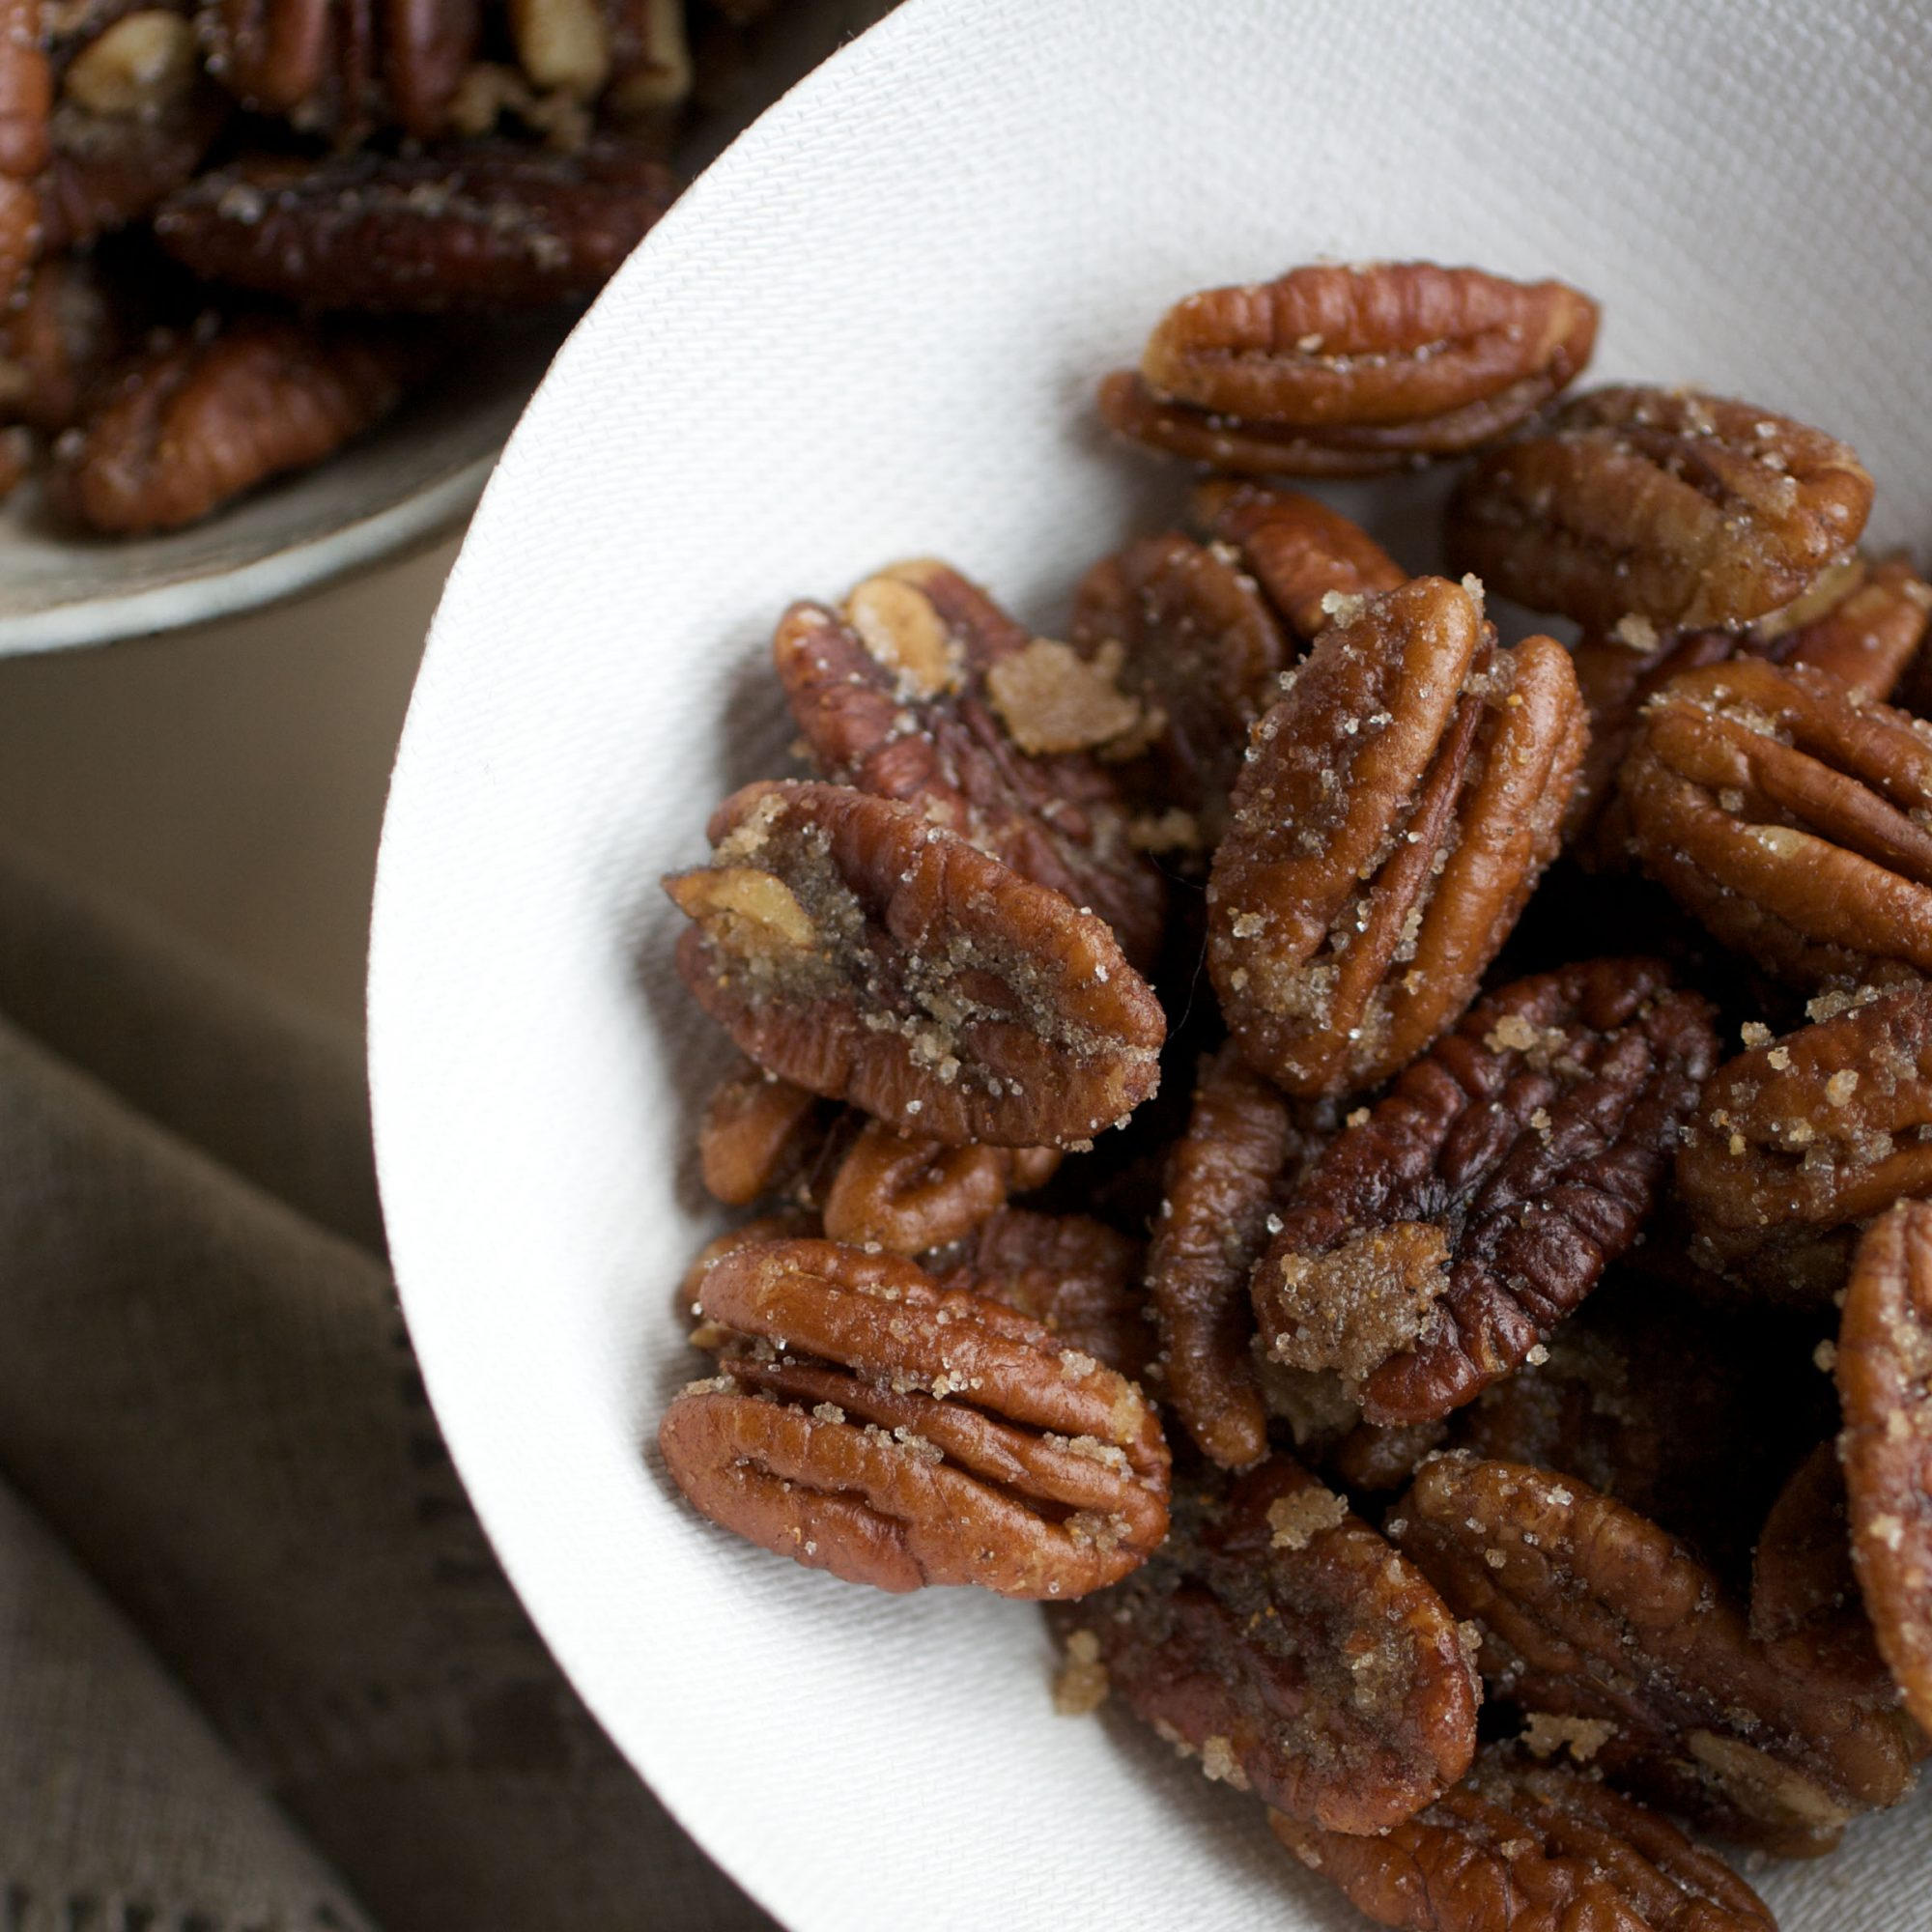 Ginger-Spiced Pecans